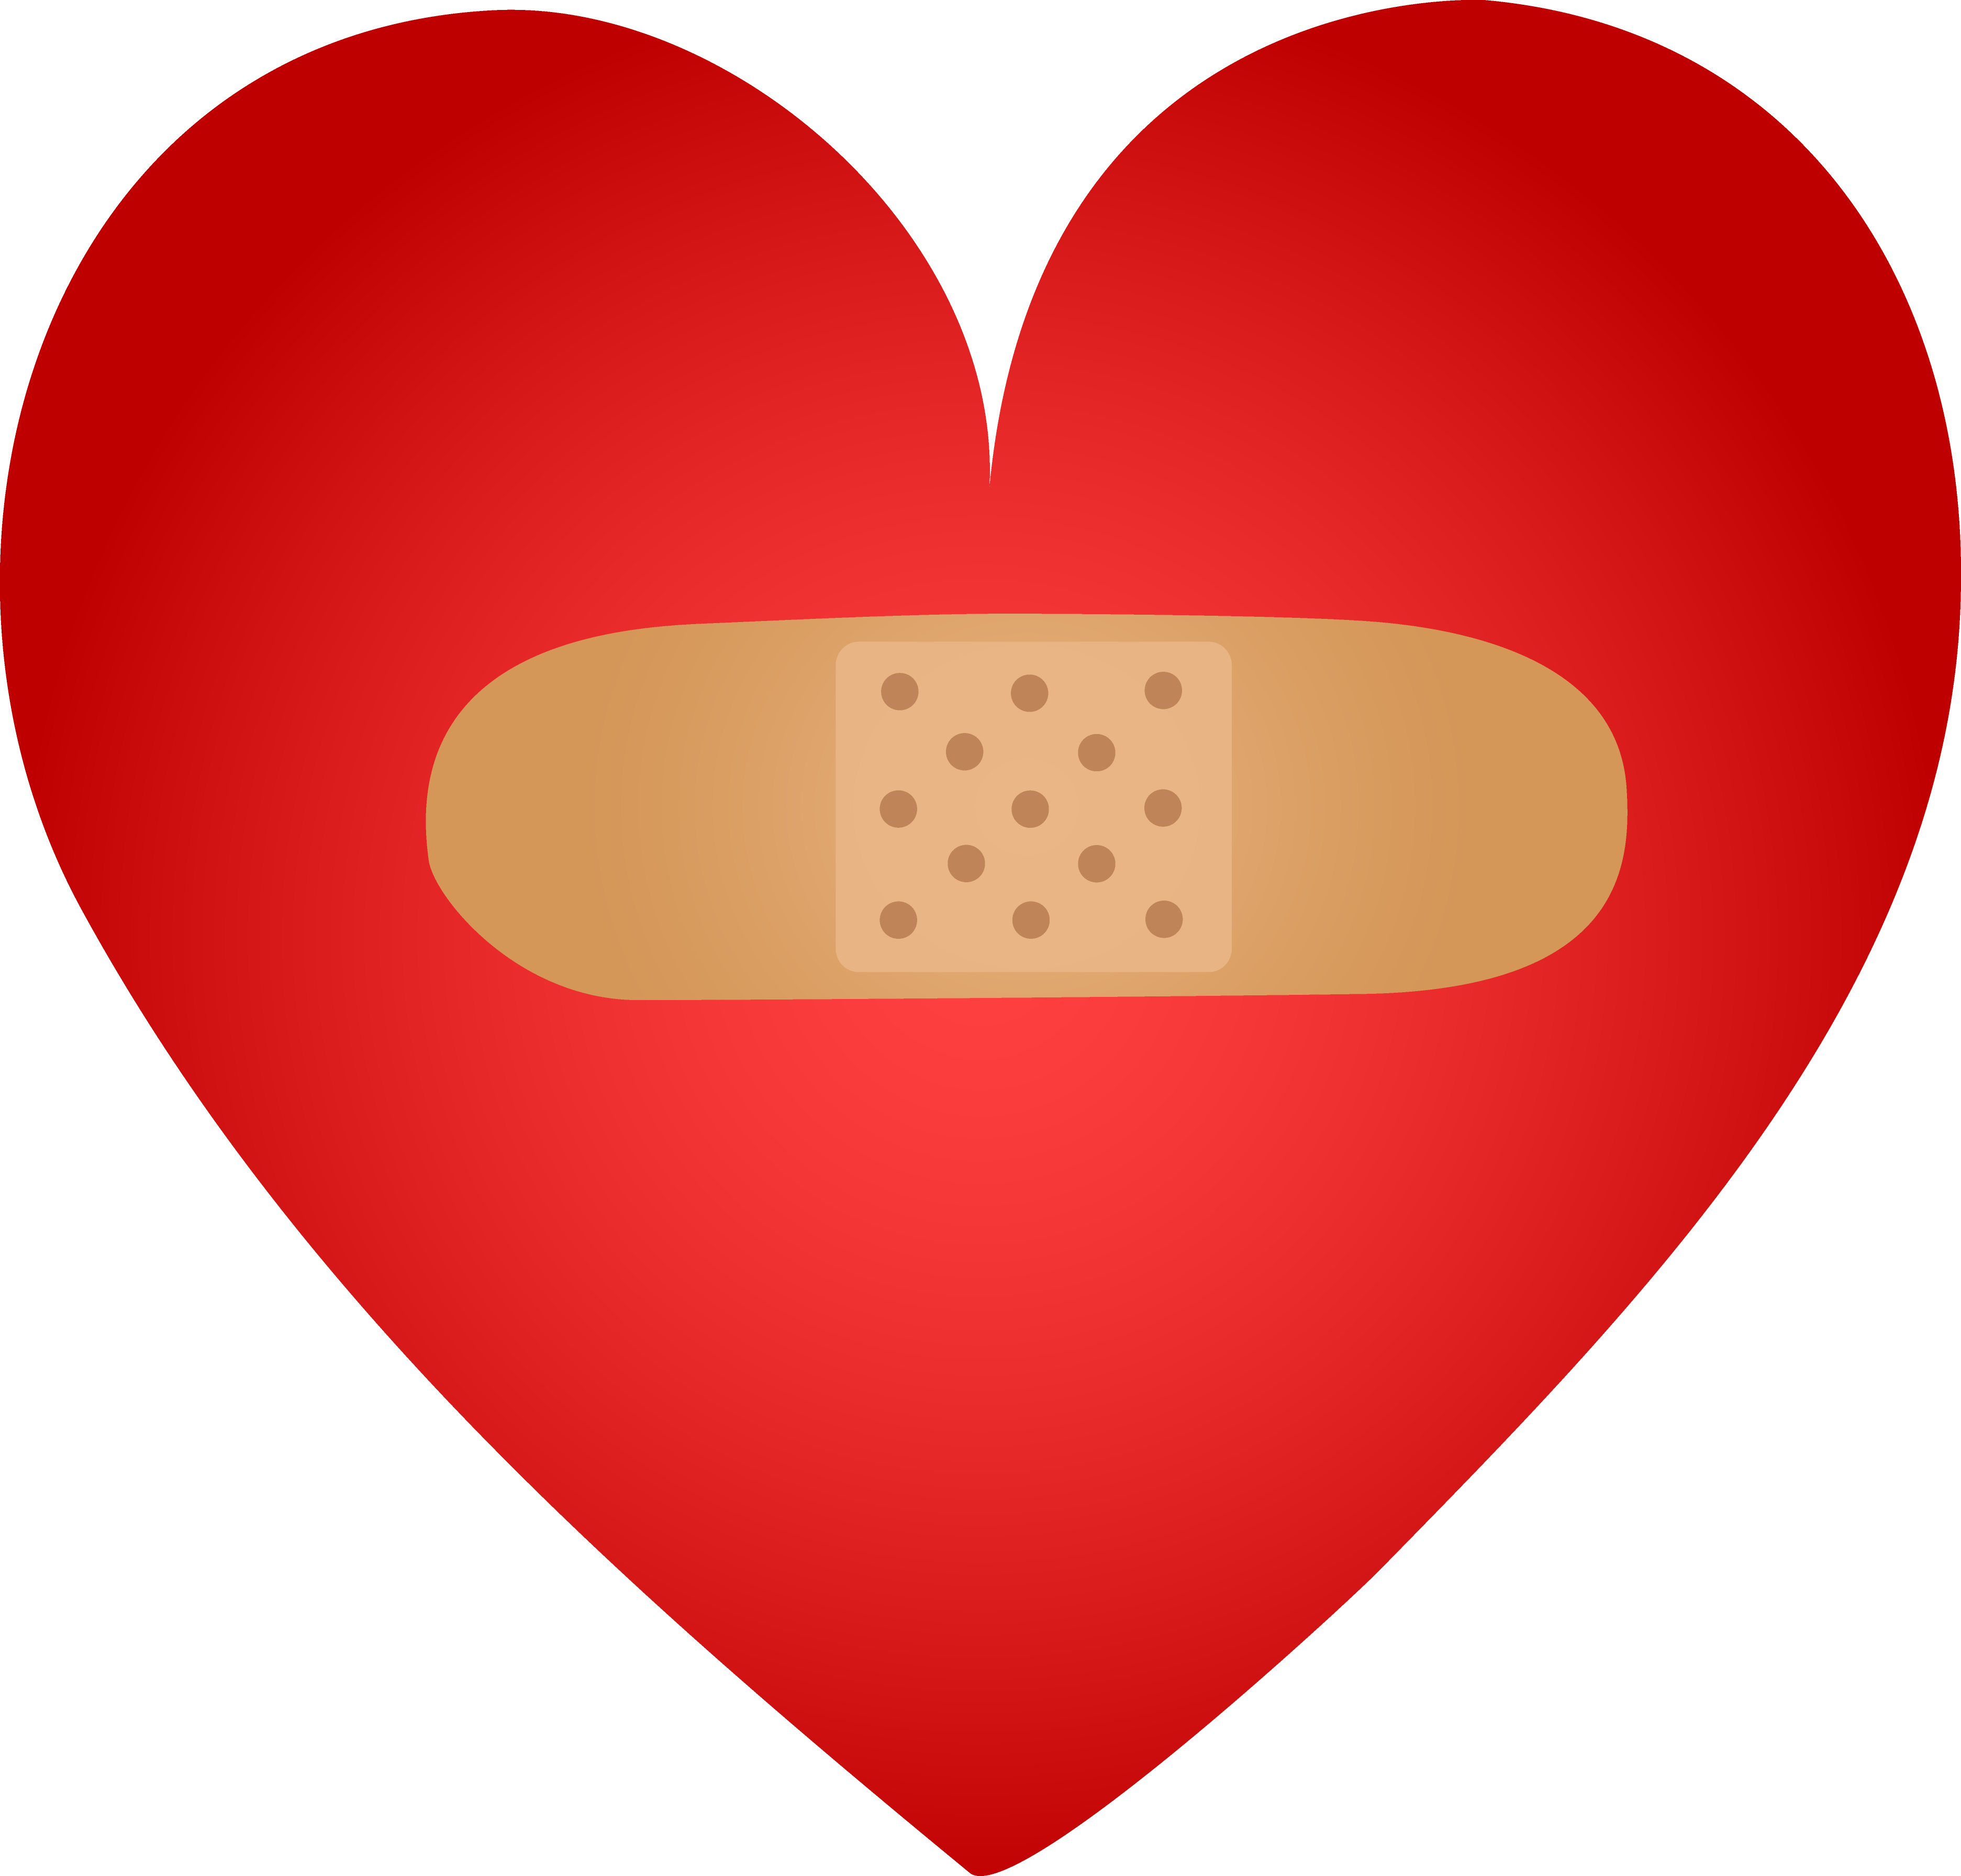 Healing clipart broken heart Aid Bandaid With Band With